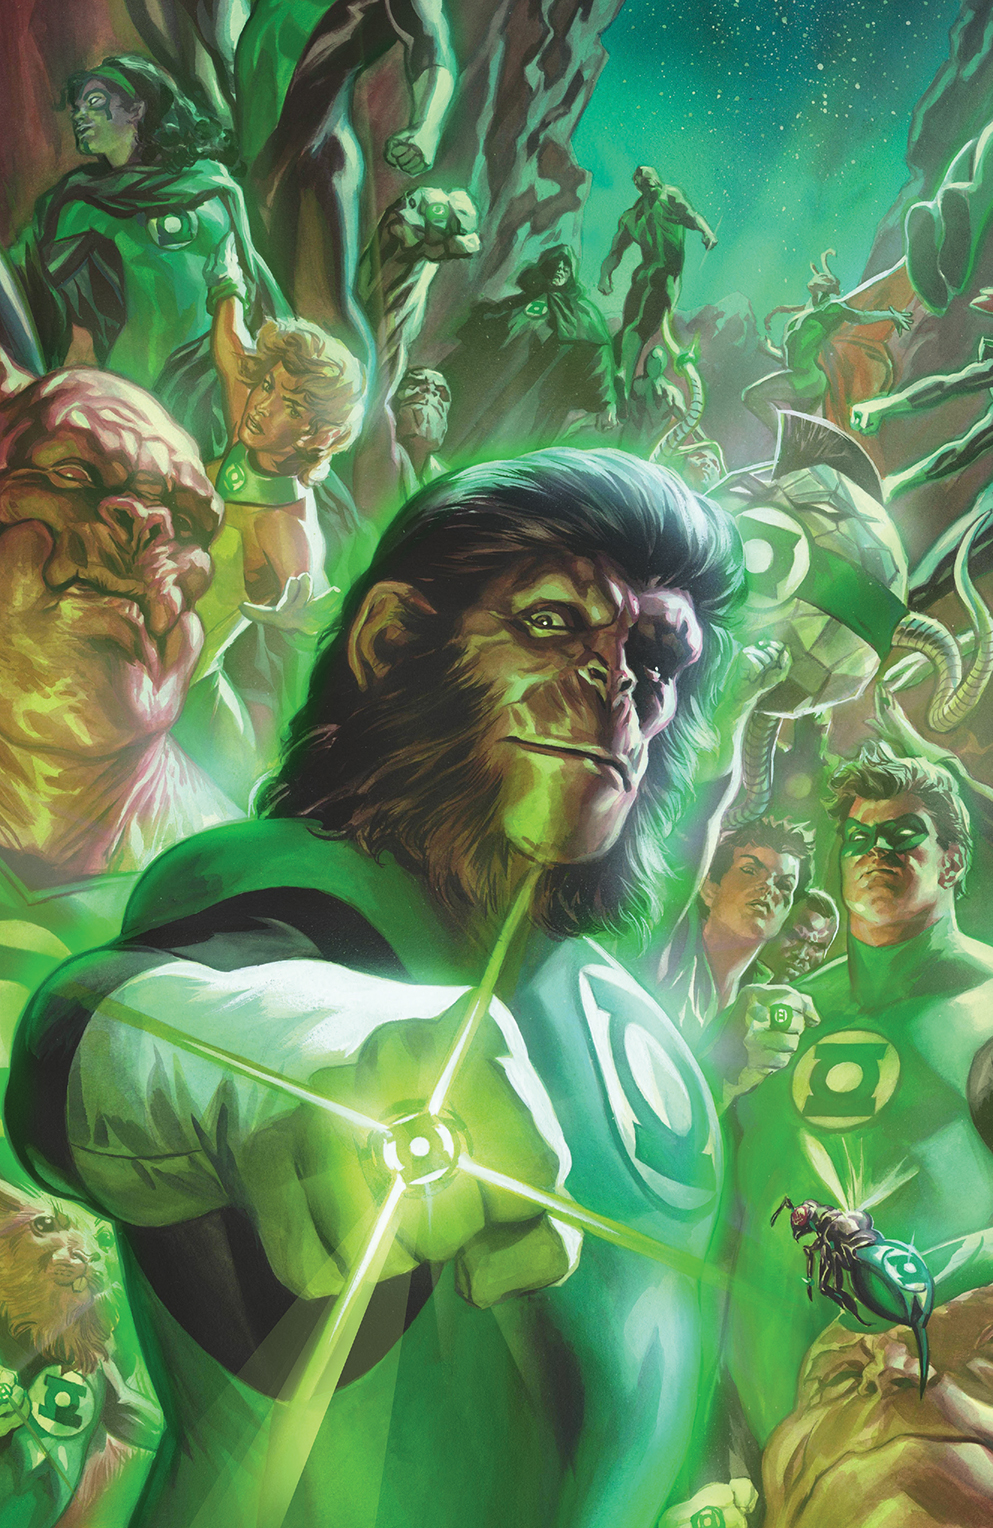 BOOM! Preview: Planet of the Apes/Green Lantern #1